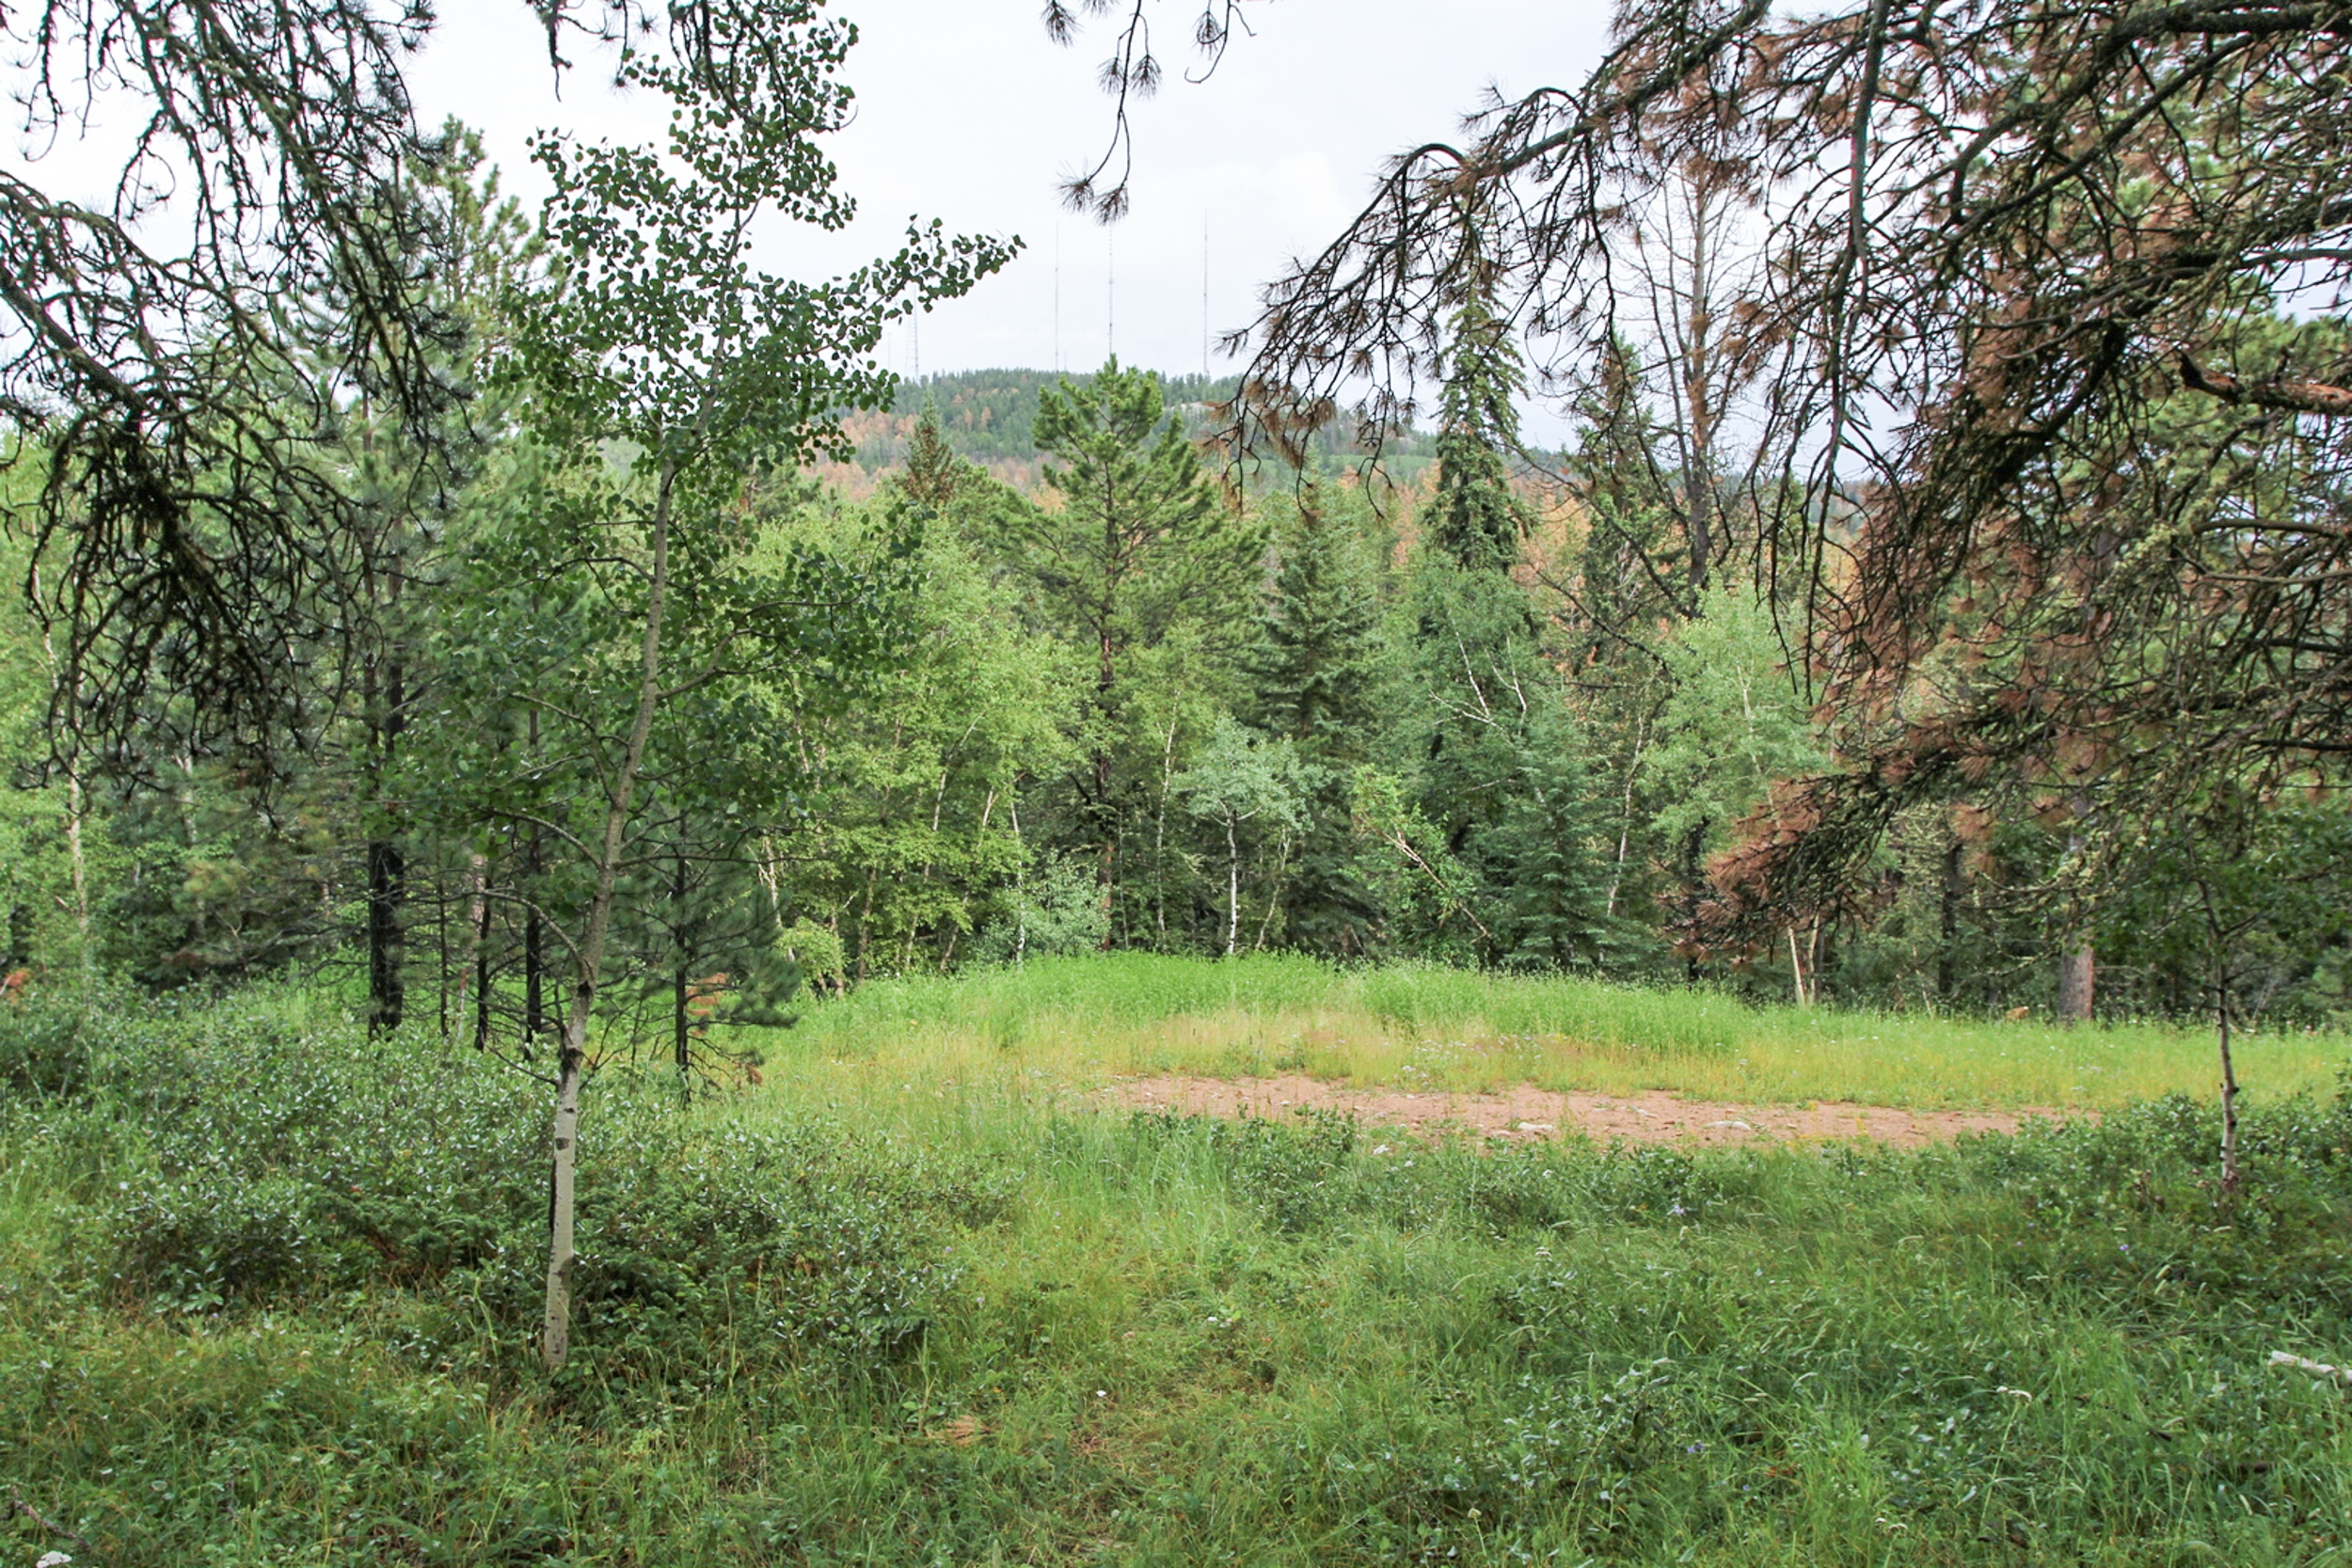 0.41 acres on Turkey Trail - Terry Peak